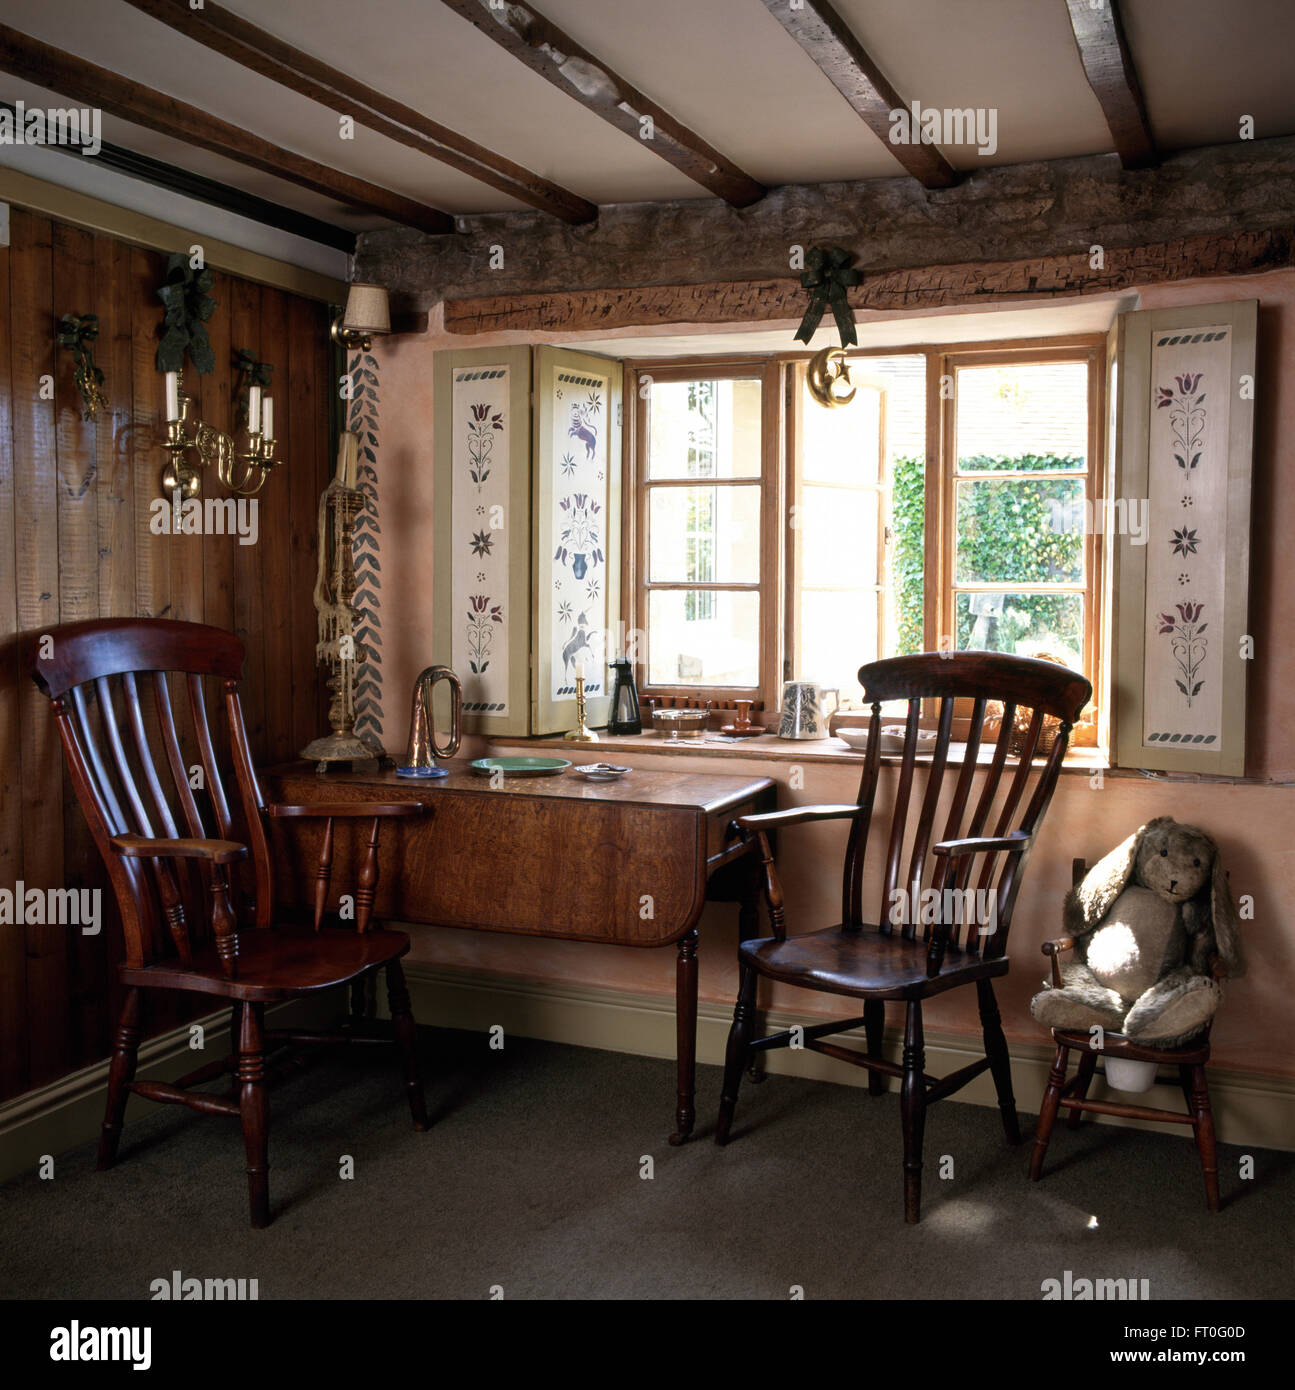 Antique Windsor chairs and old table below window with stenciled shutters  in panelled cottage dining room - Antique Windsor Chairs And Old Table Below Window With Stenciled